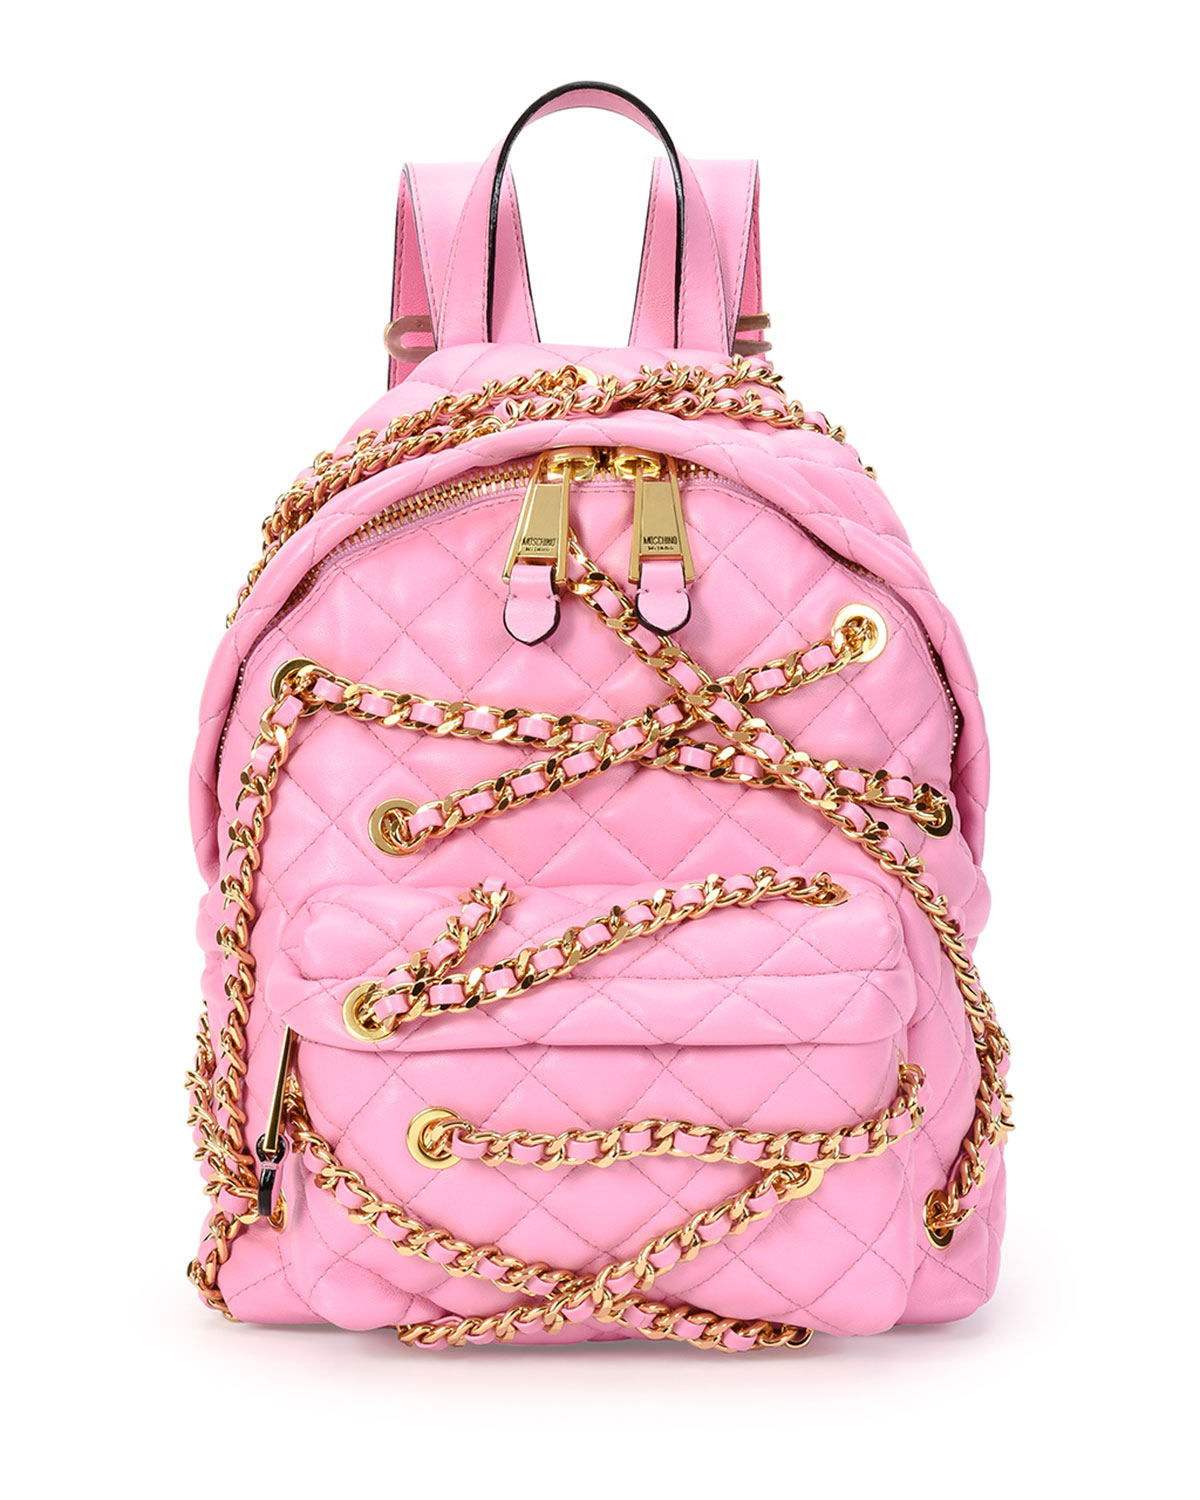 0a469f9a57 Moschino Chains Quilted Leather Backpack, Pink | Neiman Marcus